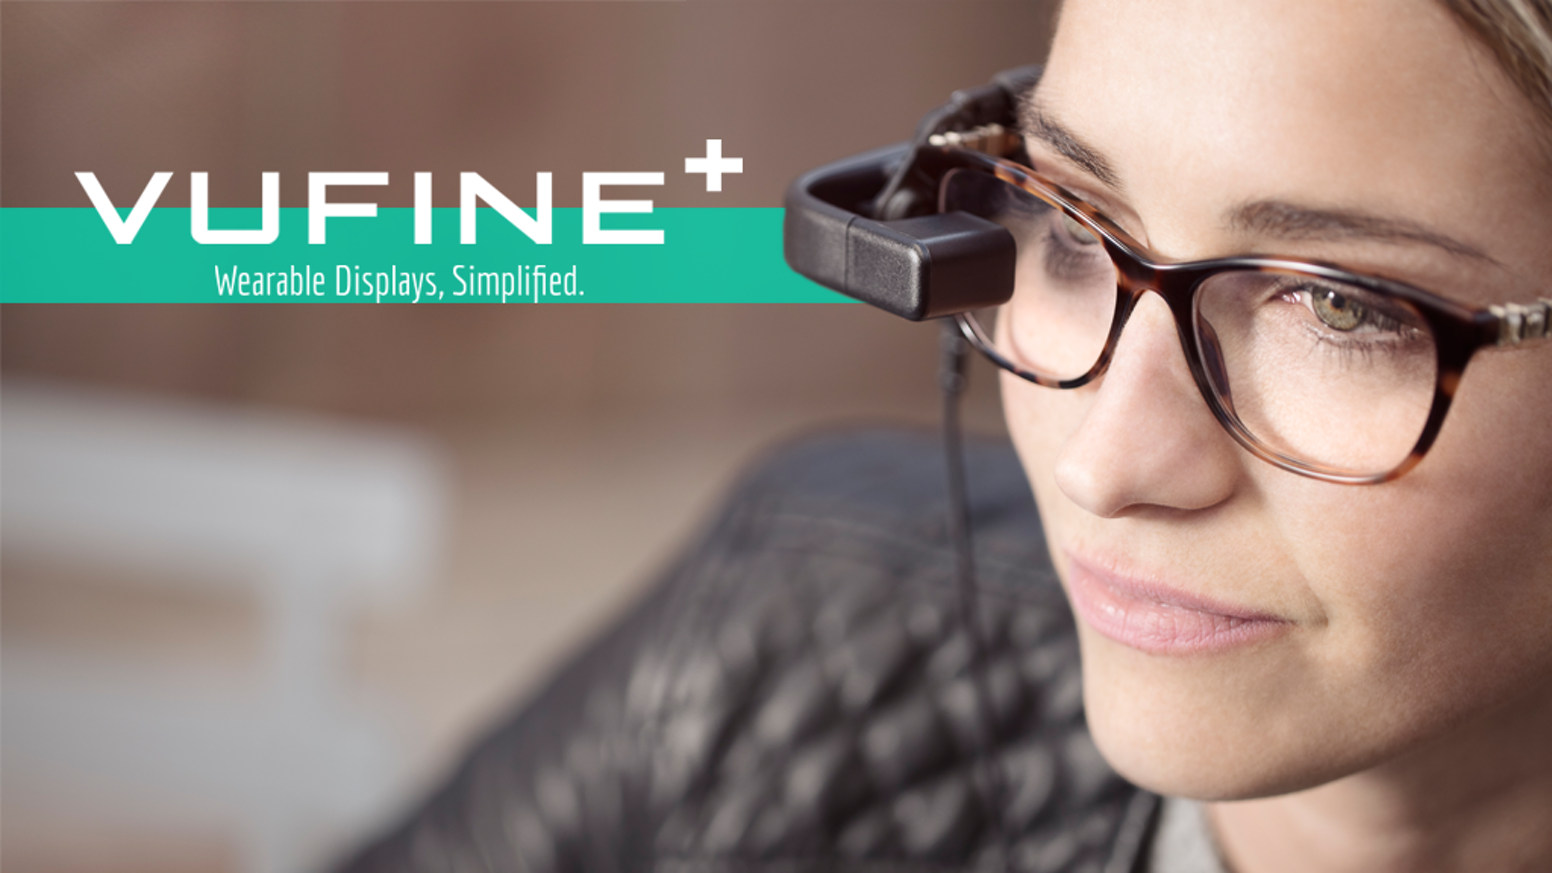 Vufine+ is a high definition wearable display that seamlessly integrates with your technology, truly unlocking its full potential.